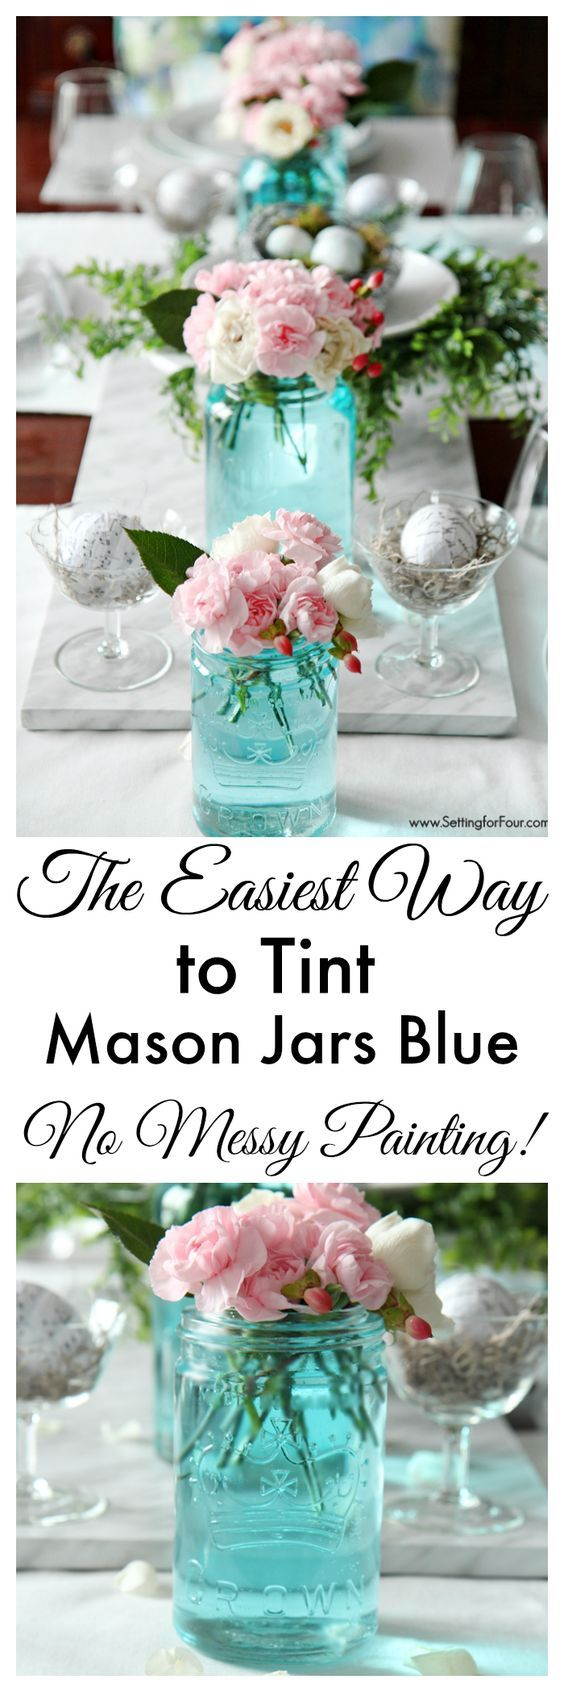 The Easiest Way to Tint Mason Jars Blue. Beautiful addition to 30th birthday party decor!